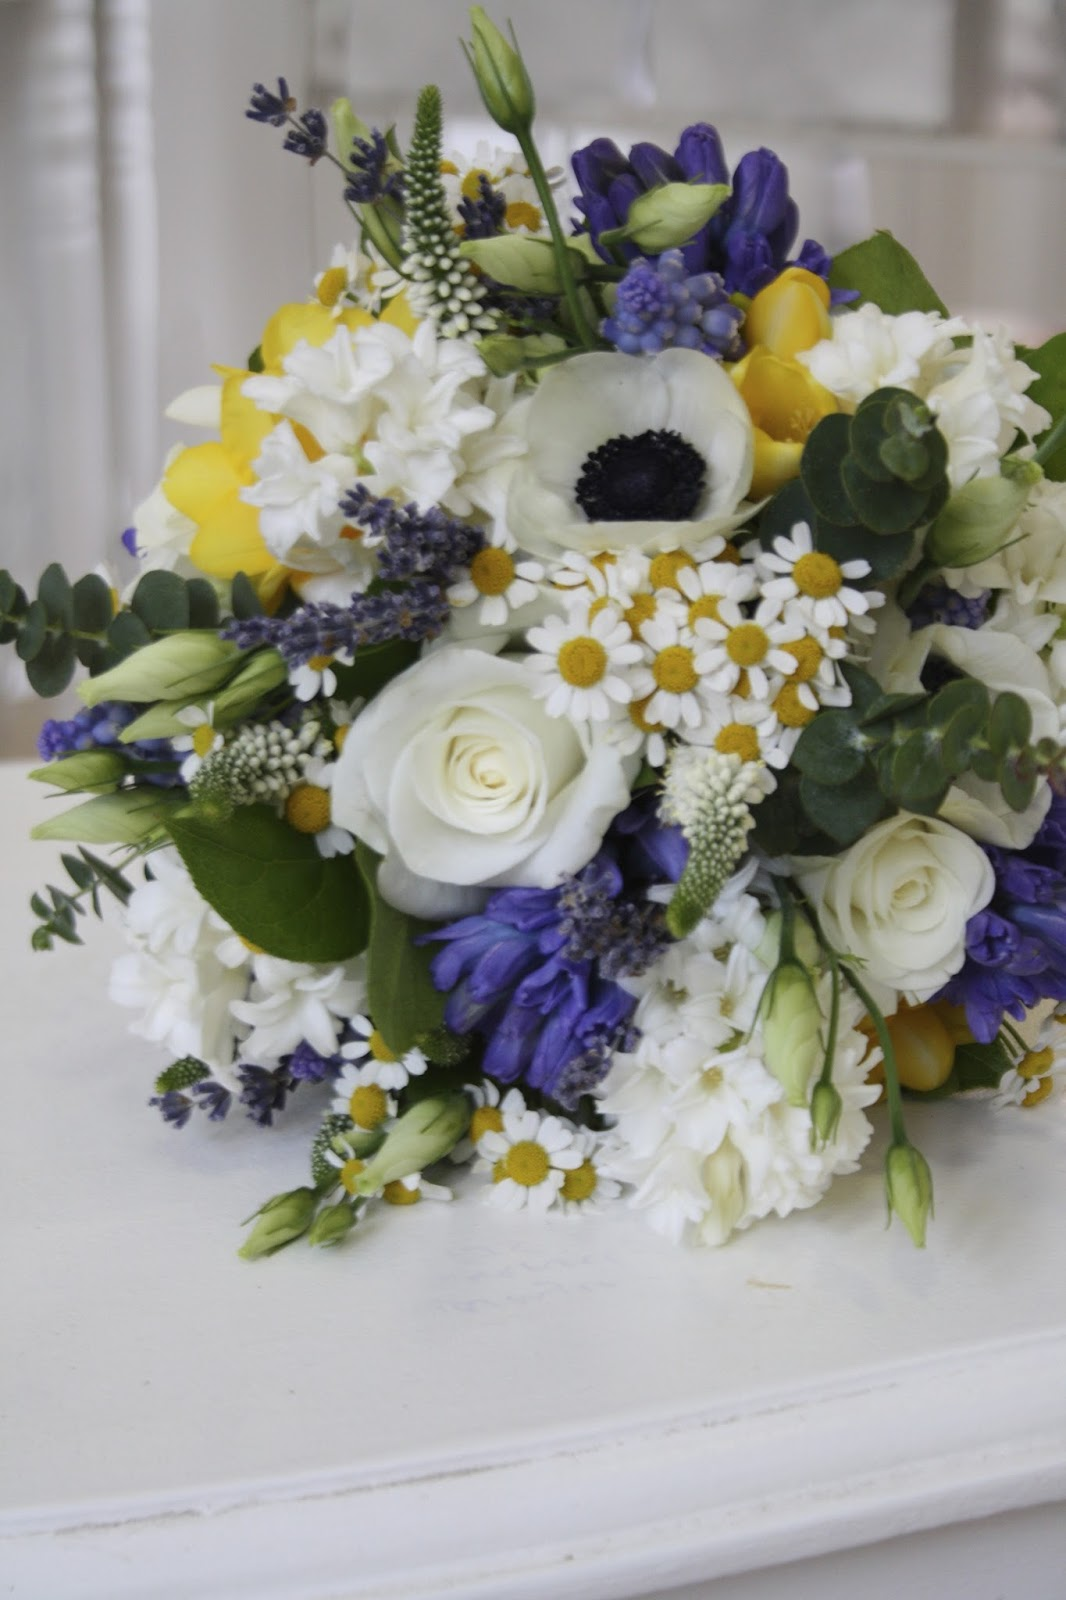 The Flower Magician: Vintage Spring Wedding Bouquet  |Spring Wedding Flowers Bridal Bouquet